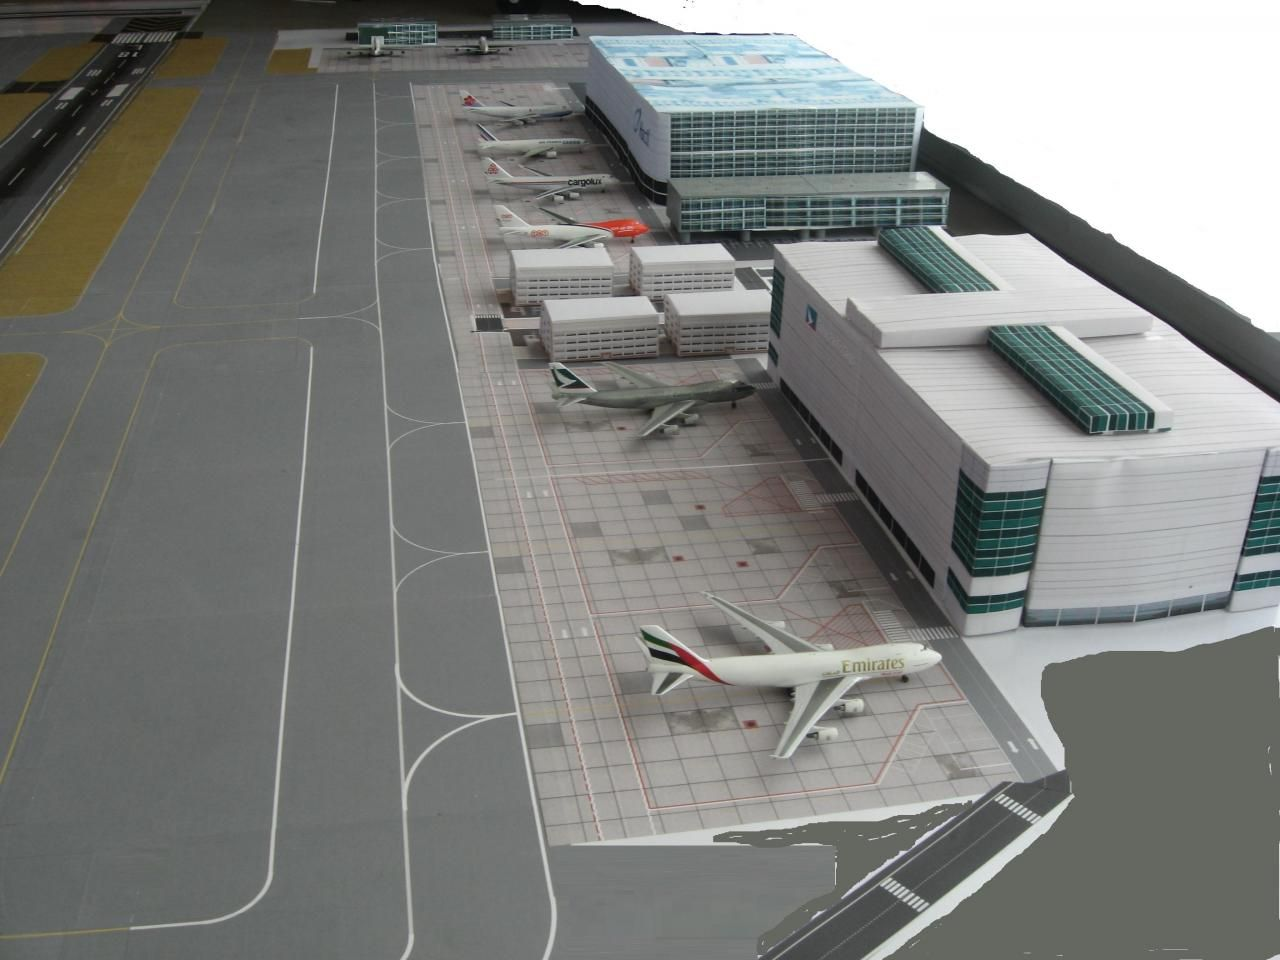 1 400 Airport Diorama Google Search Airport Model Airplanes Diorama